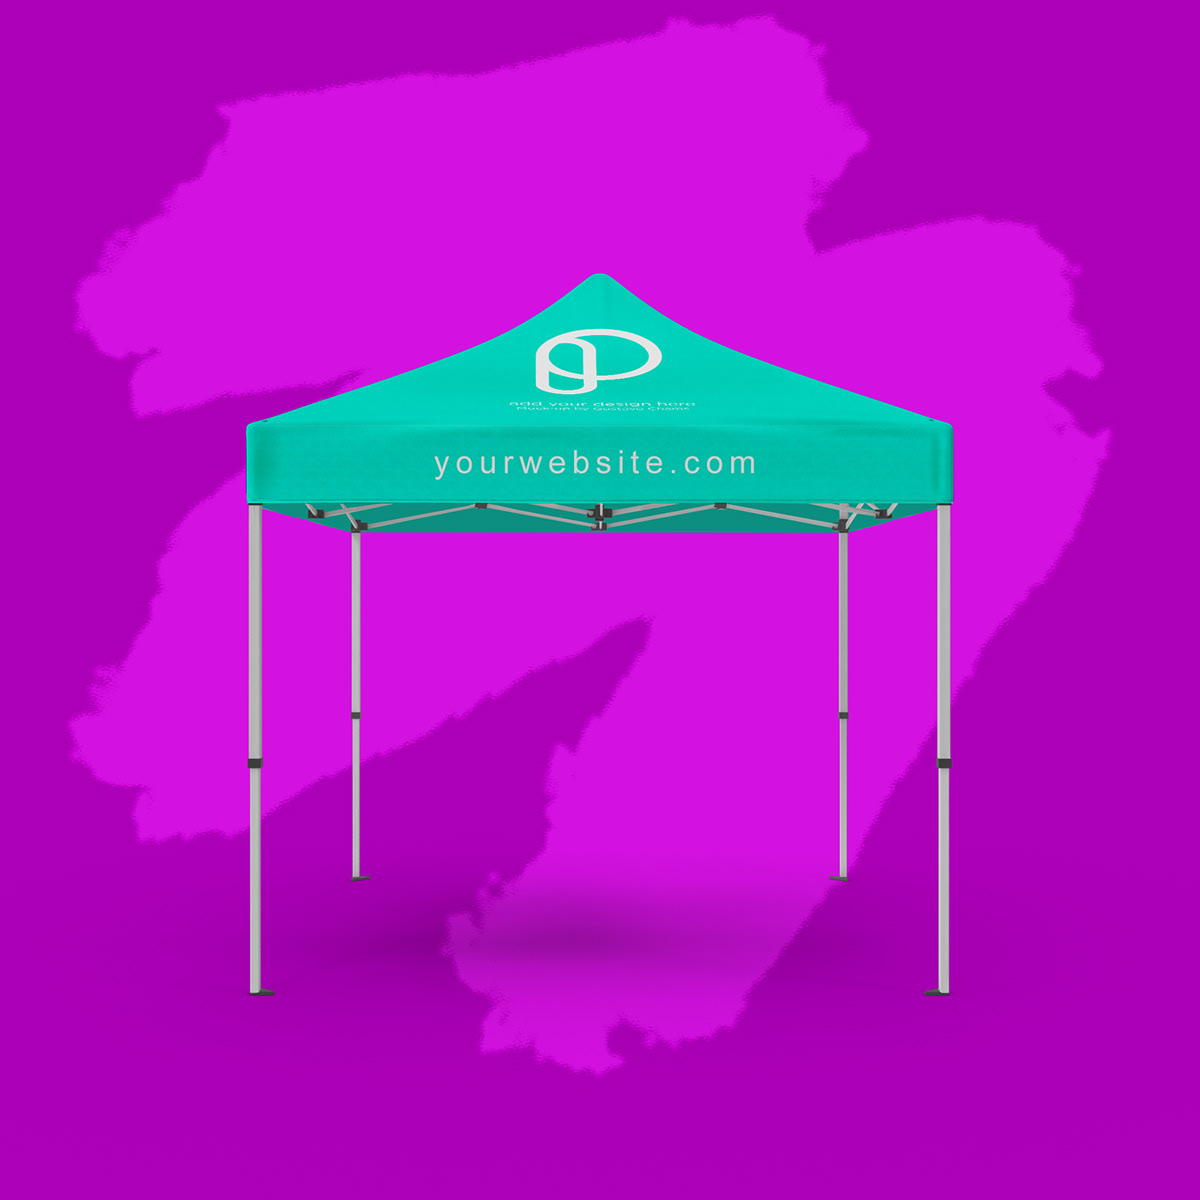 FREE SQUARE CANOPY TENT MOCKUP - EVENT BOOTH 10x10 on Student Show